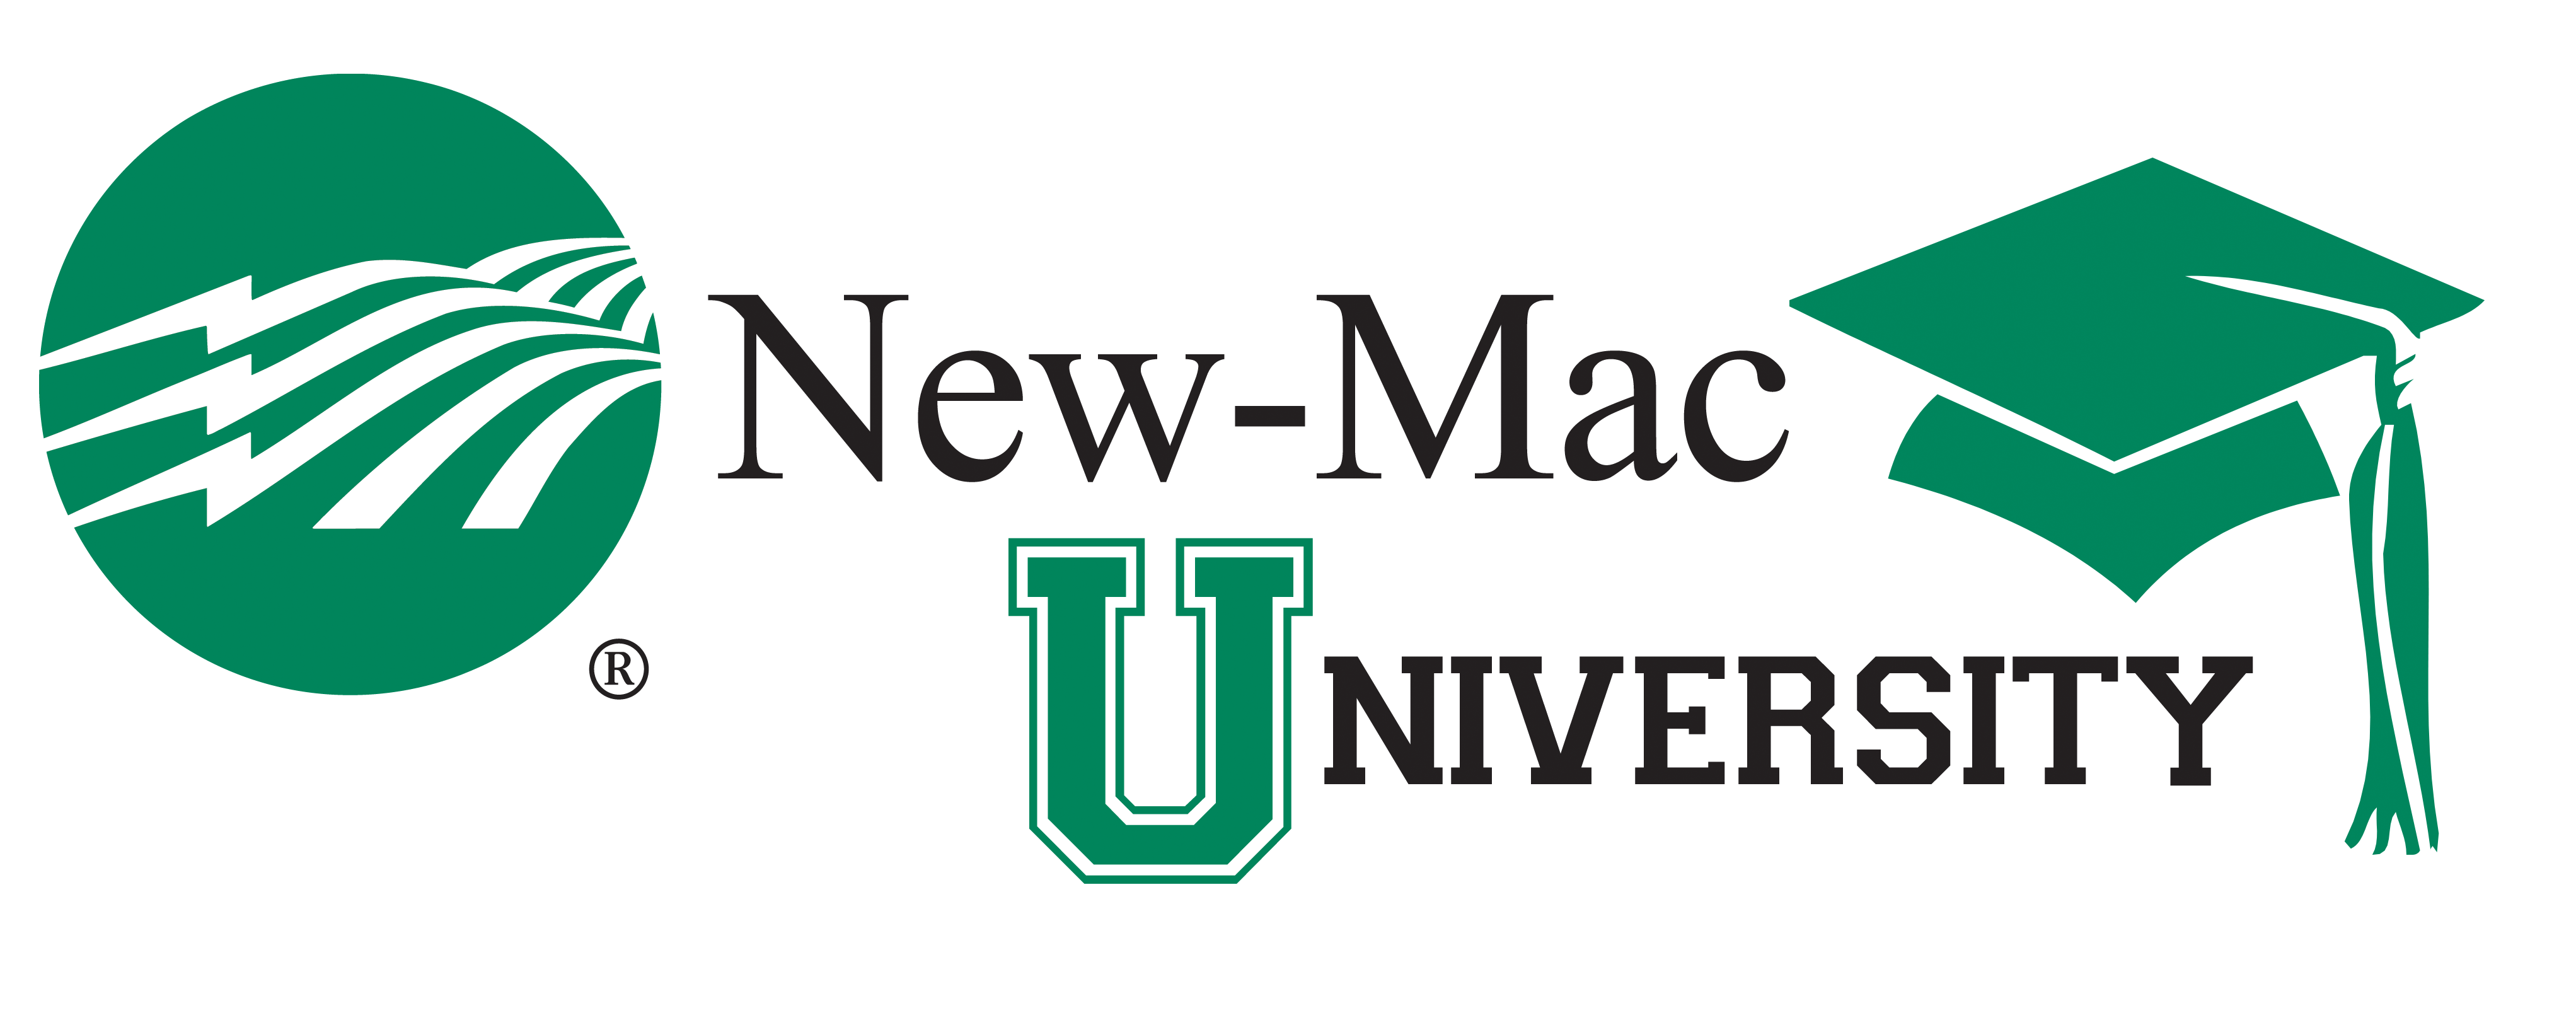 New-Mac University logo